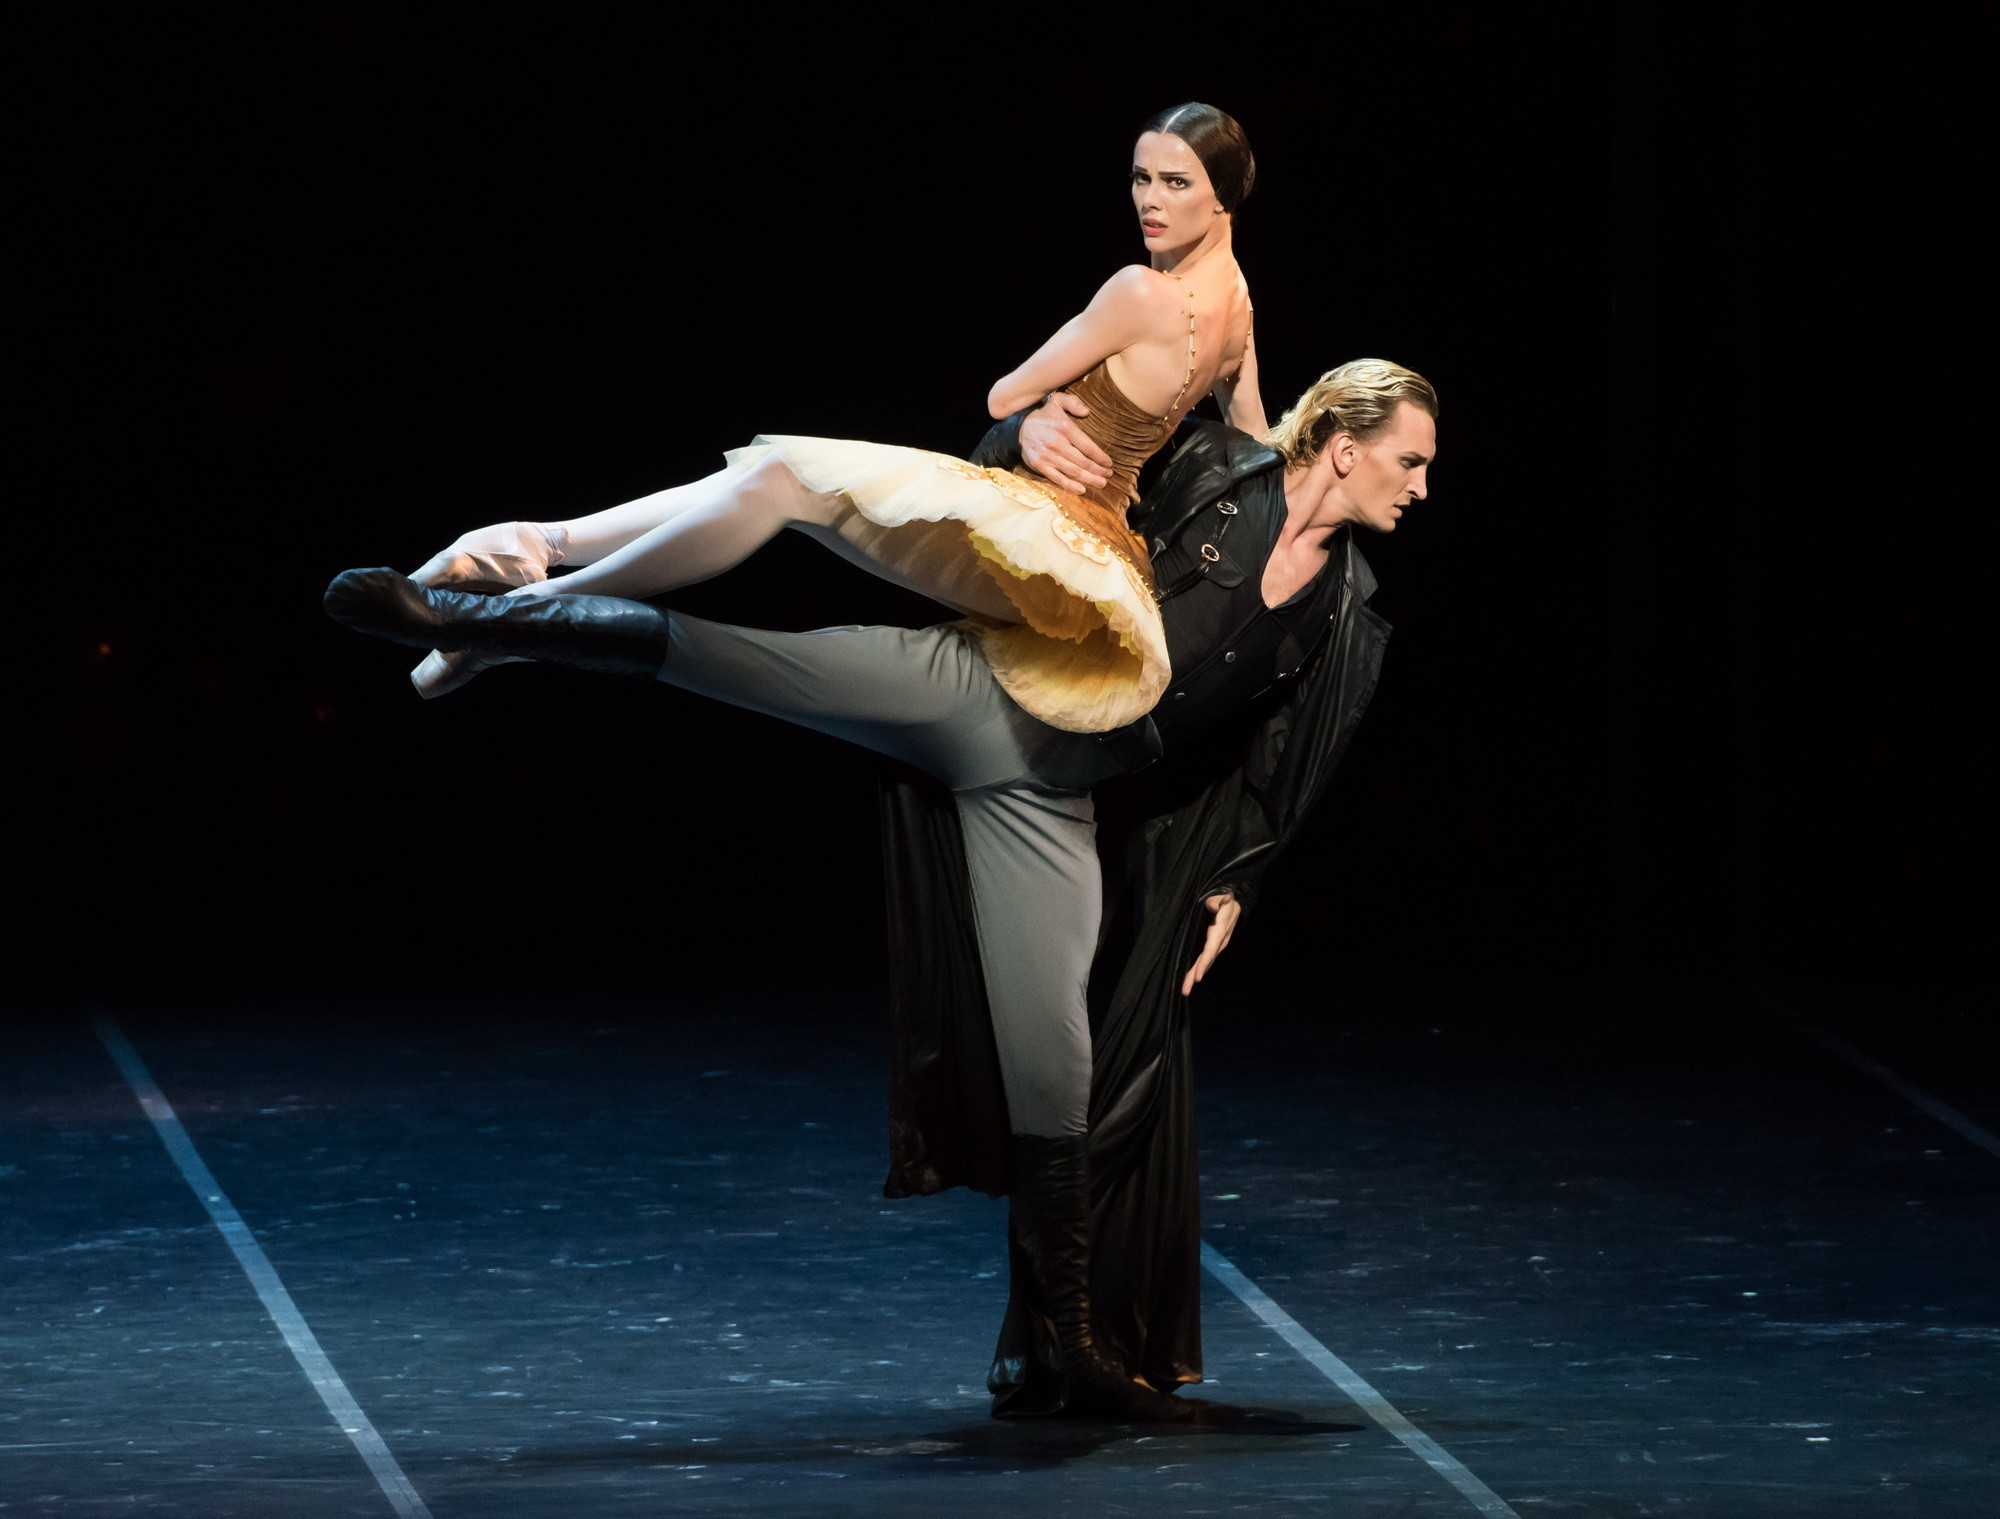 Maria Abashova as Ballerina, Sergey Volobuev as Commissar at Segerstrom.